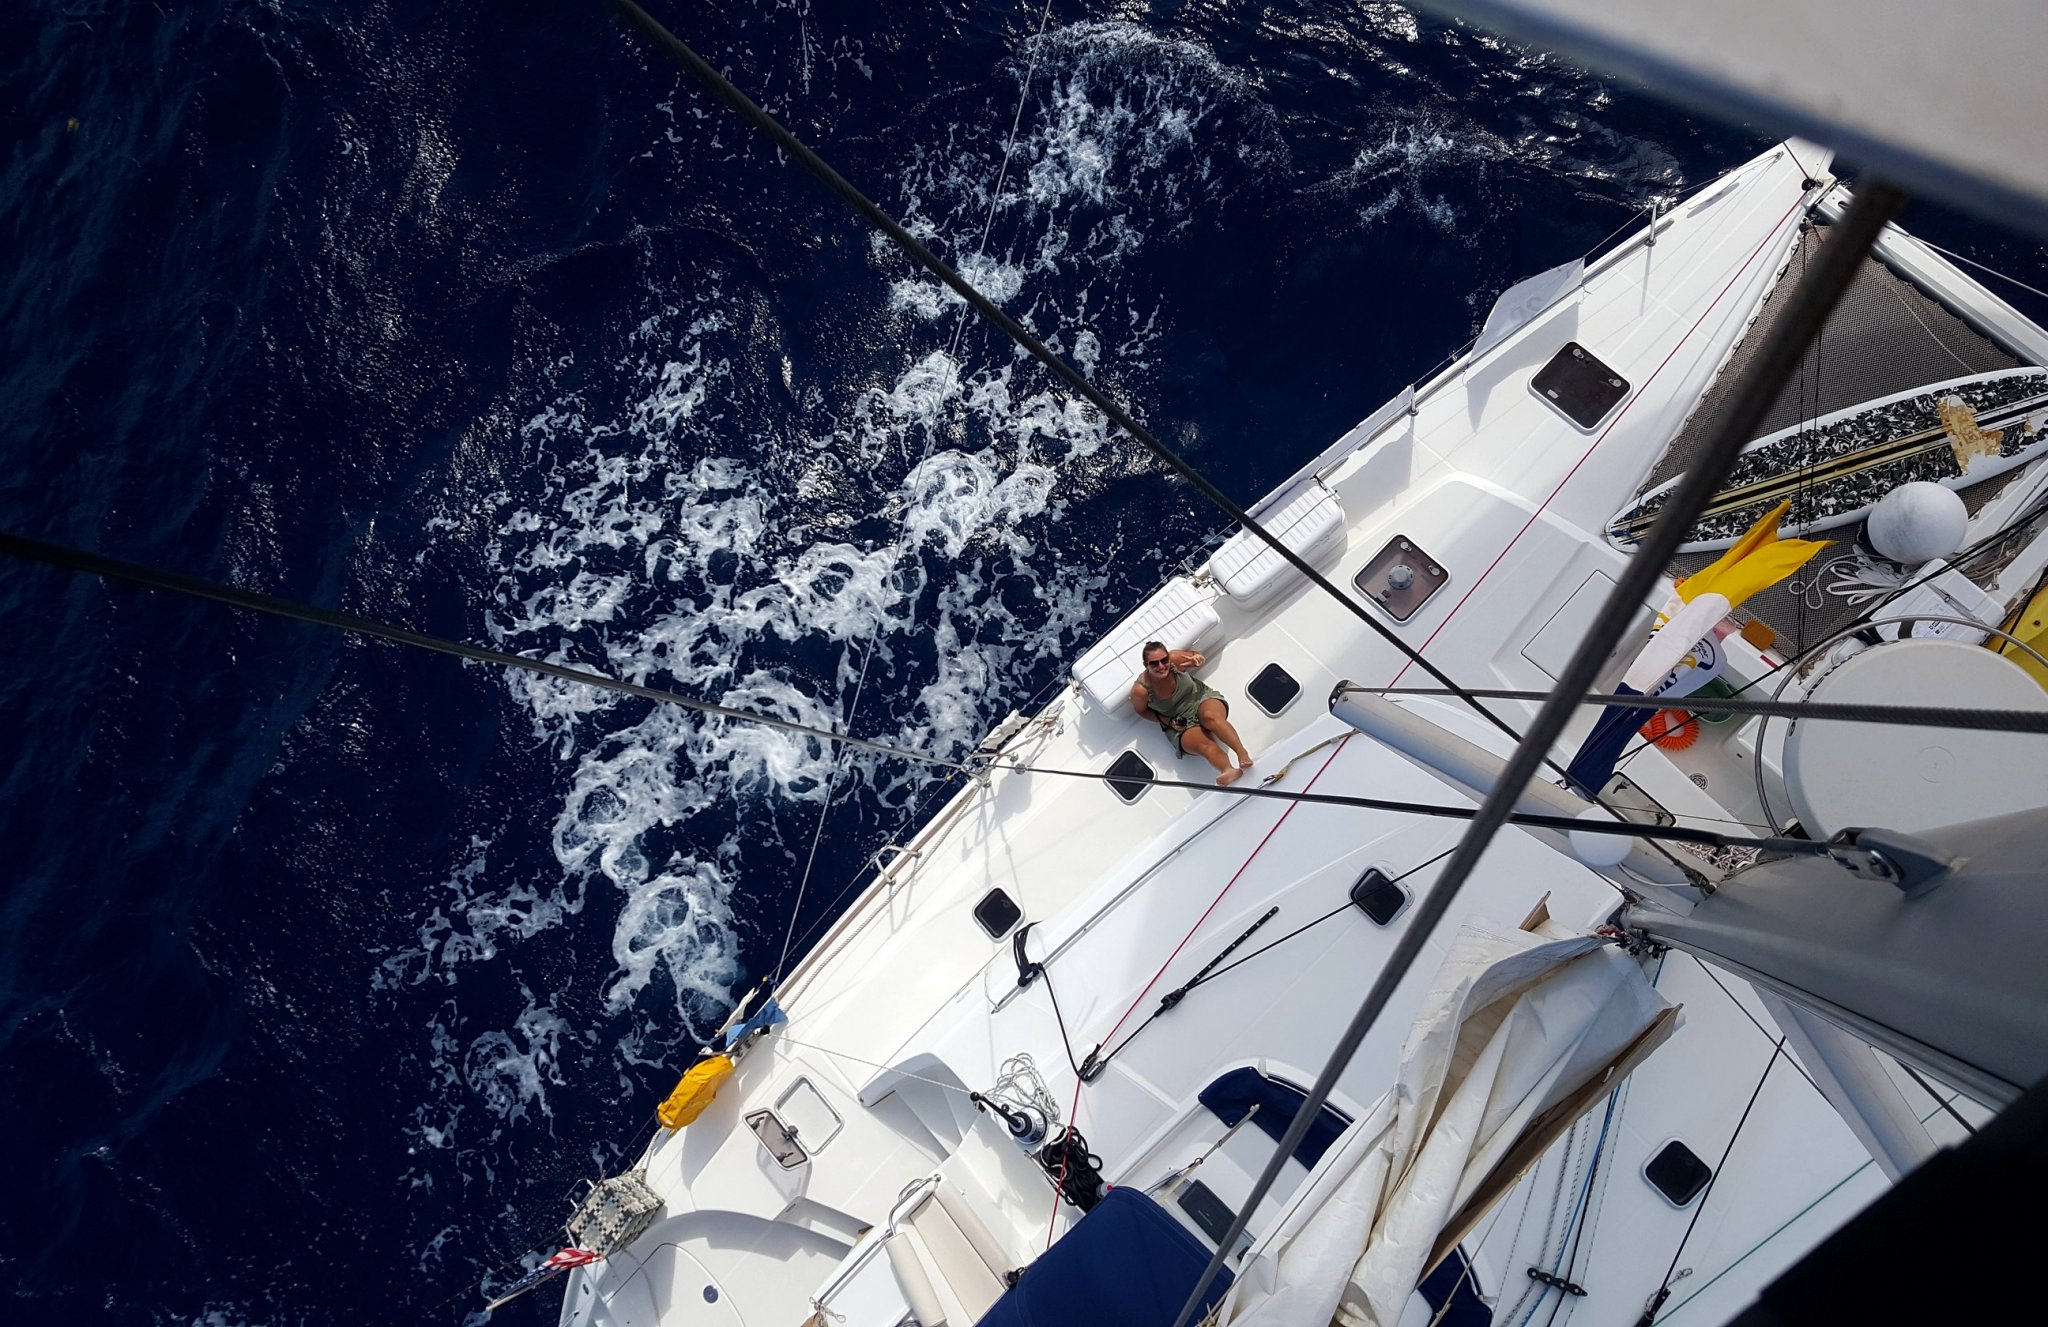 …HITCHSAILING THE ATLANTIC